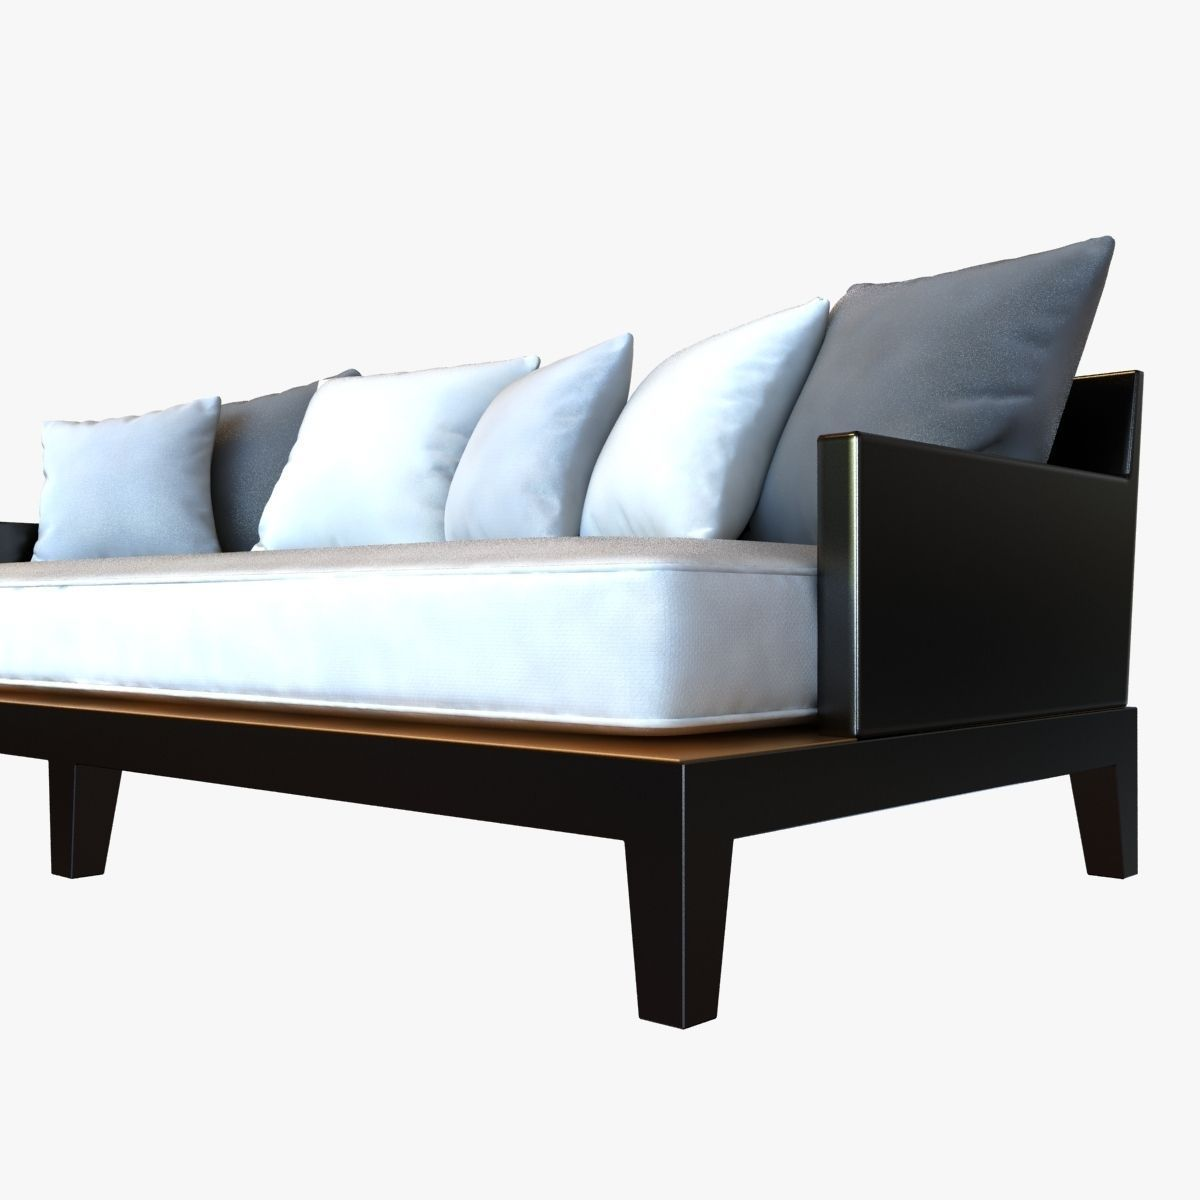 Big Sofa Christian Christian Liaigre Sofa For Holly Hunt Opium 3d Model Max